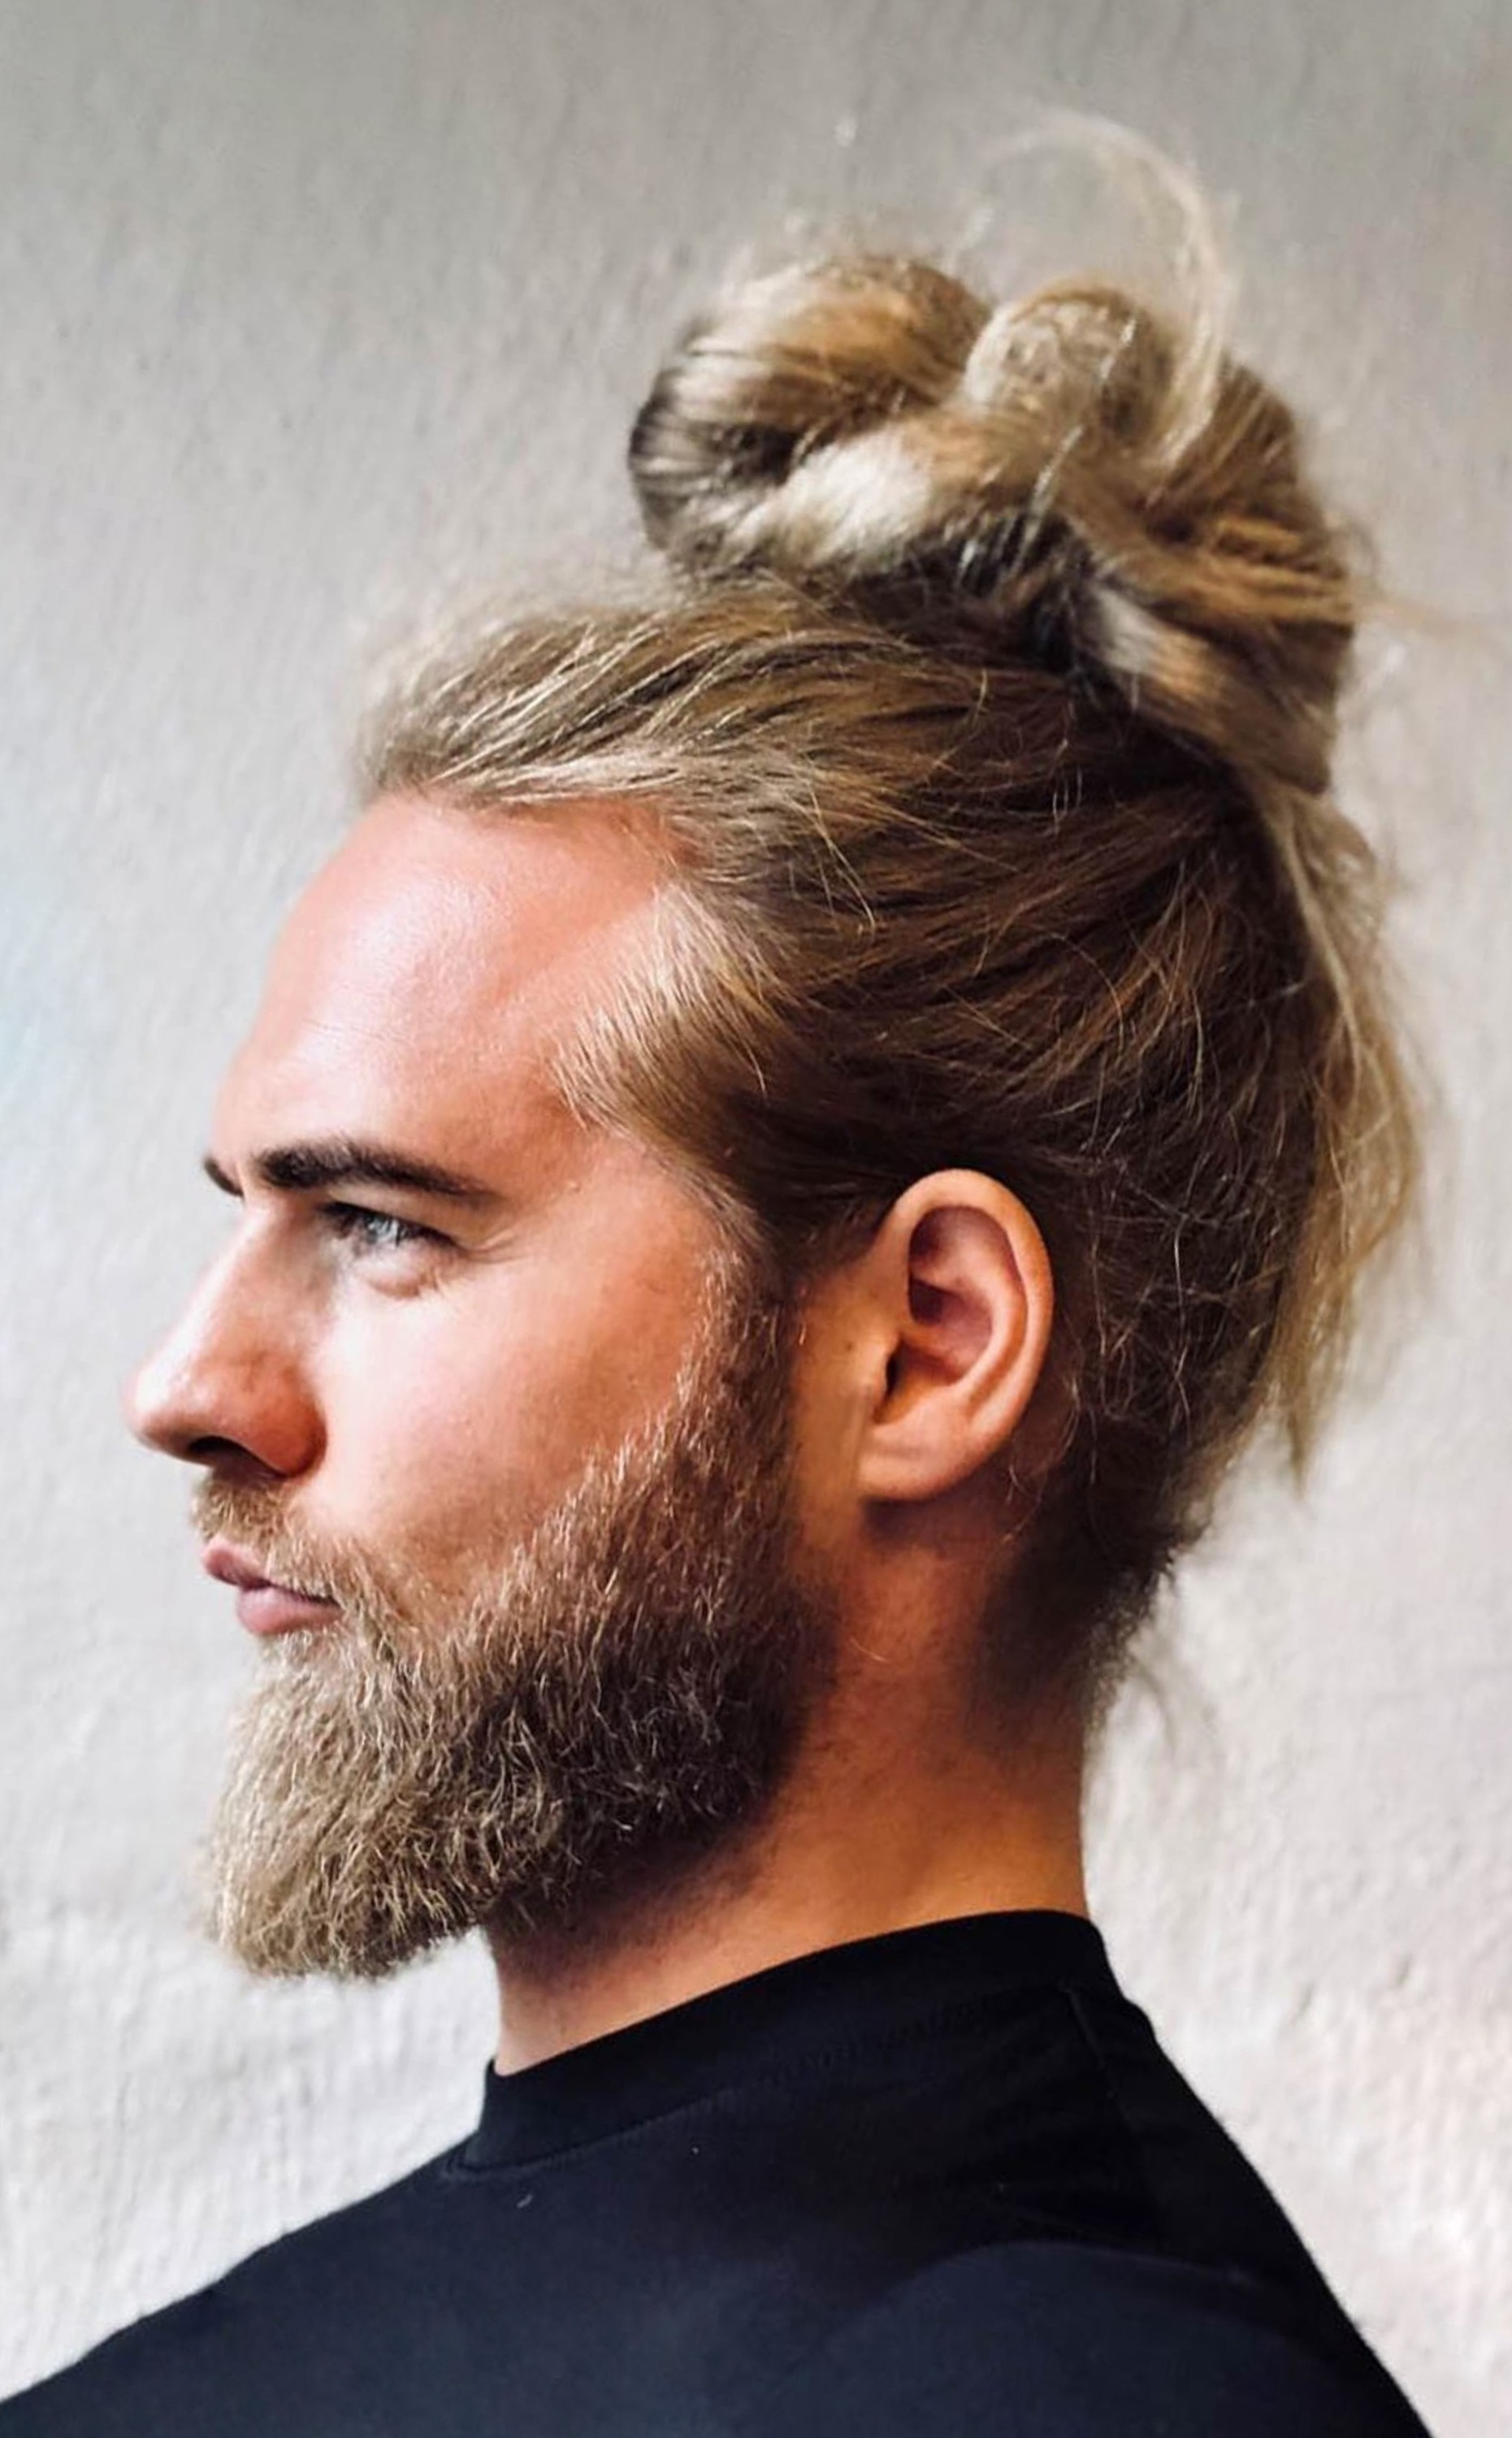 A fascinating male bun style.